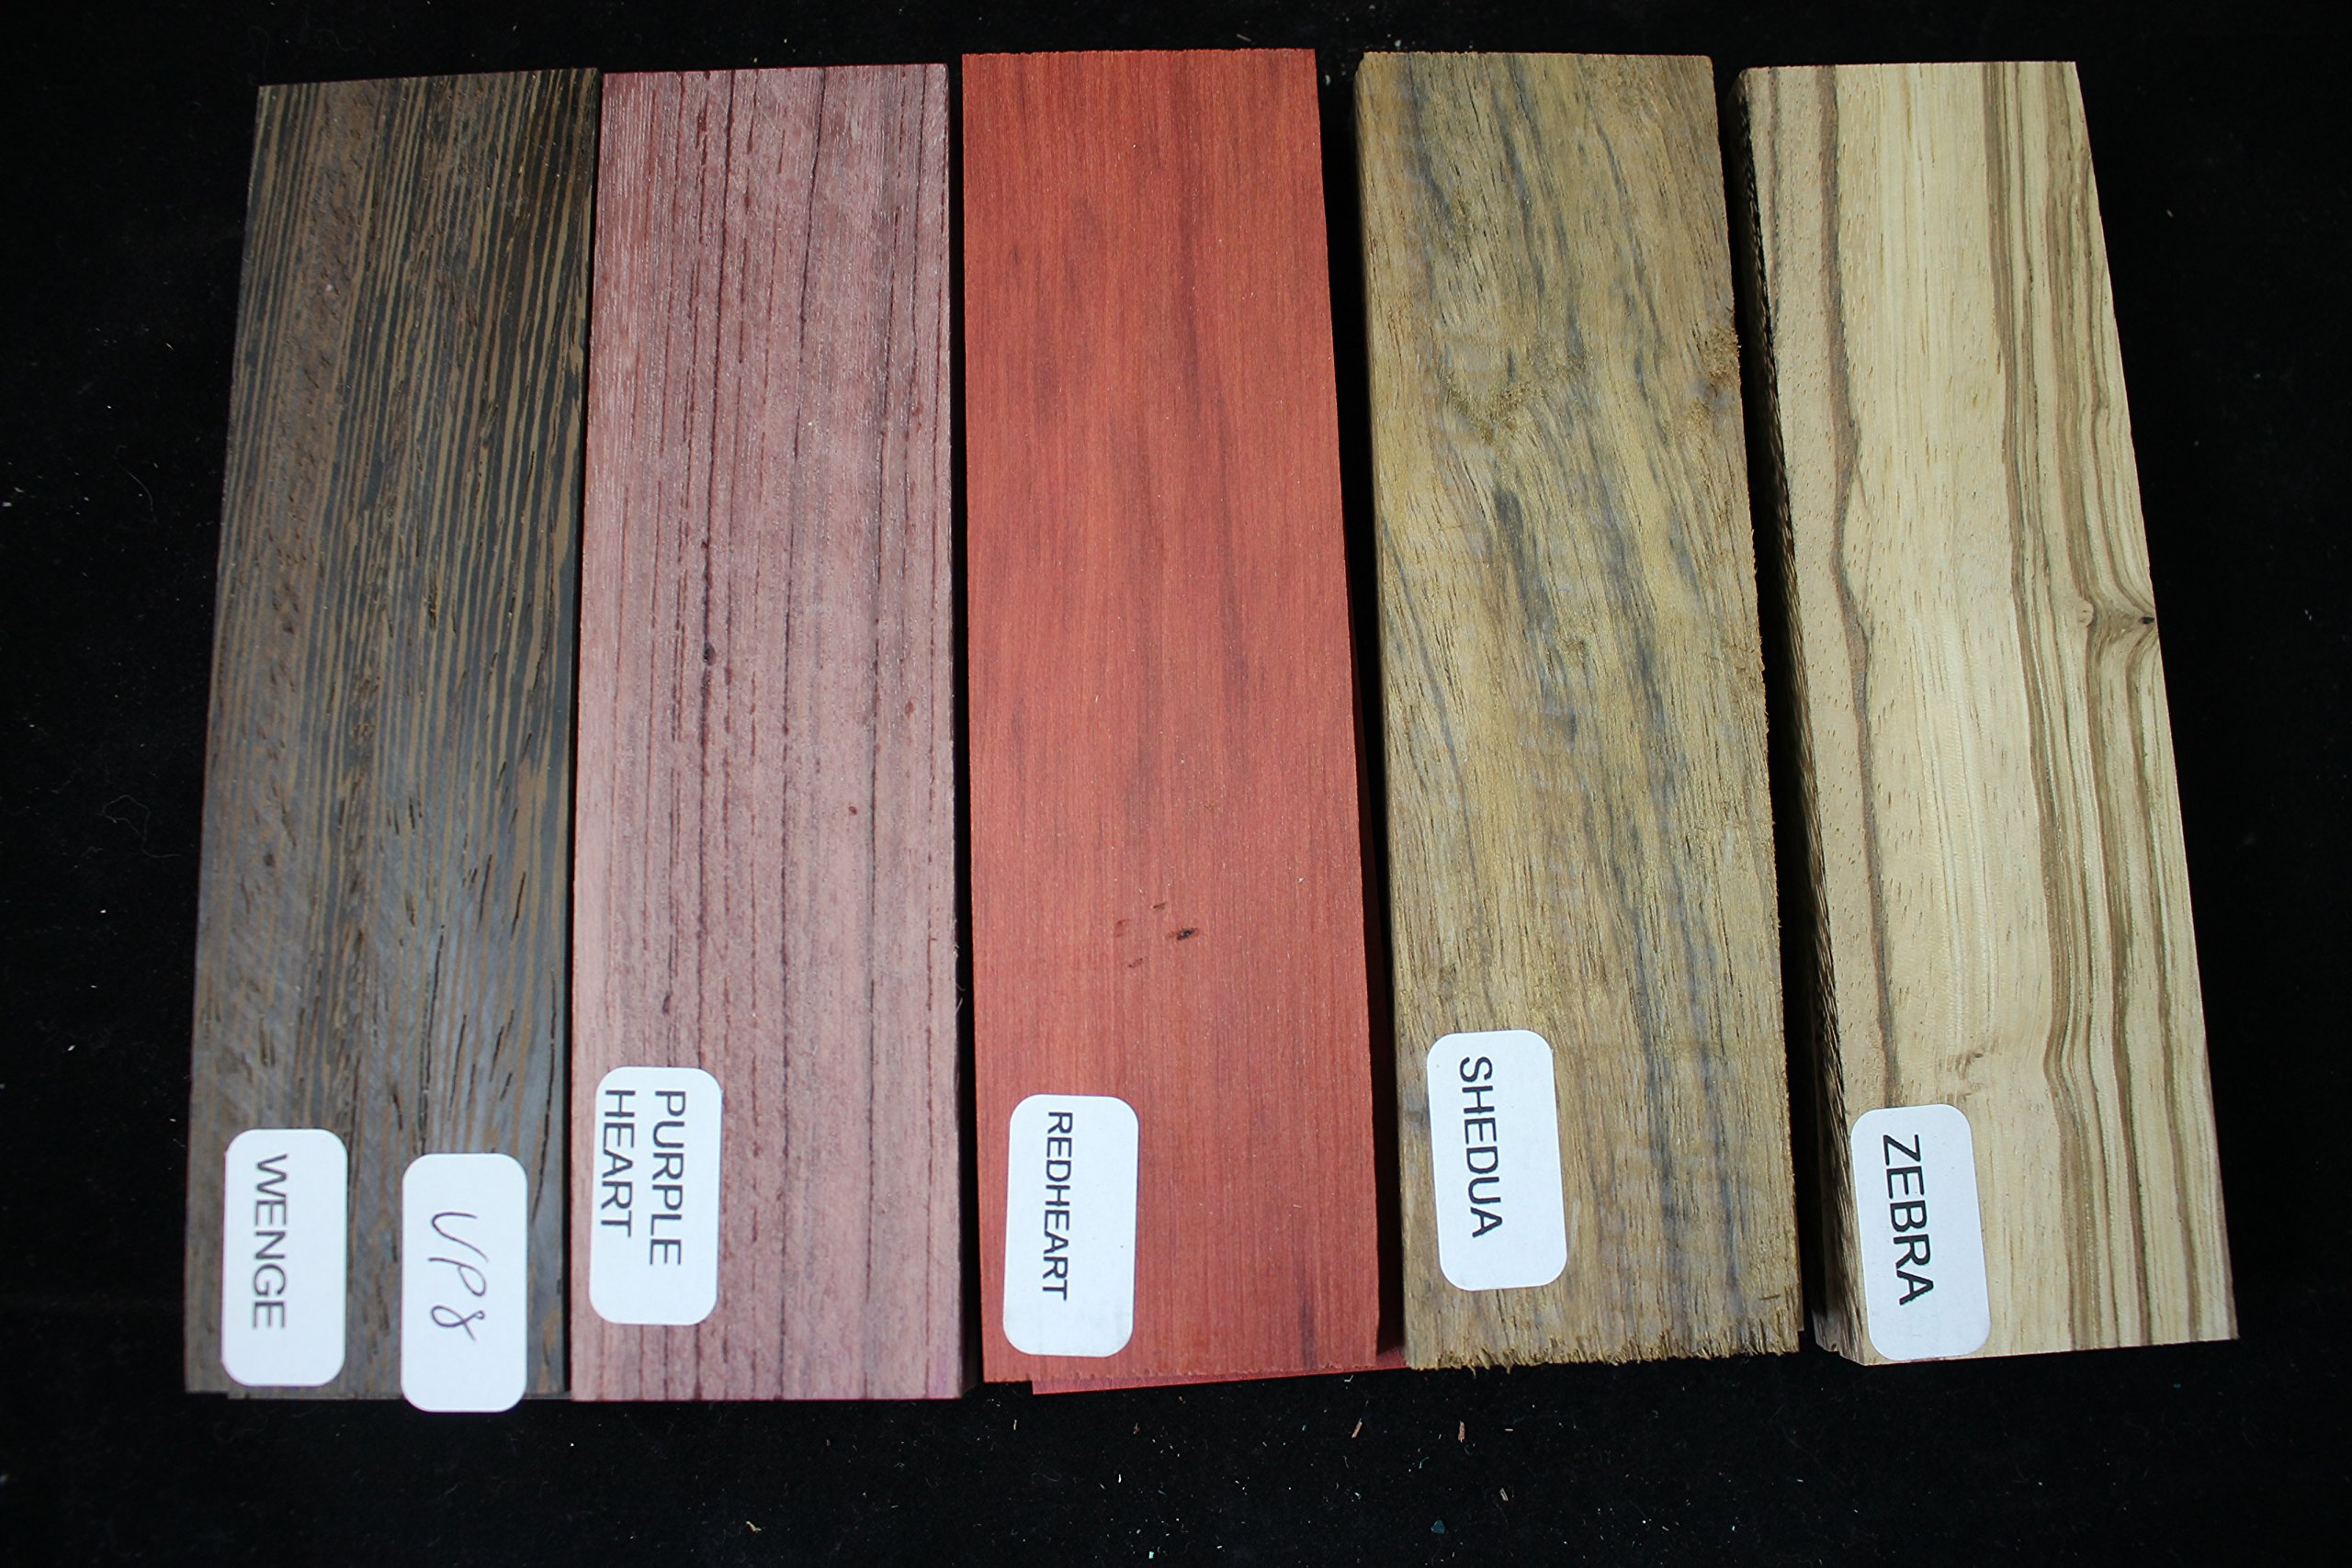 Payne Bros Custom Knives Variety Pack of 5 Wood Scales, 5 INCH, for Knife Making - Gun grps - Craft Supplies (VP8)